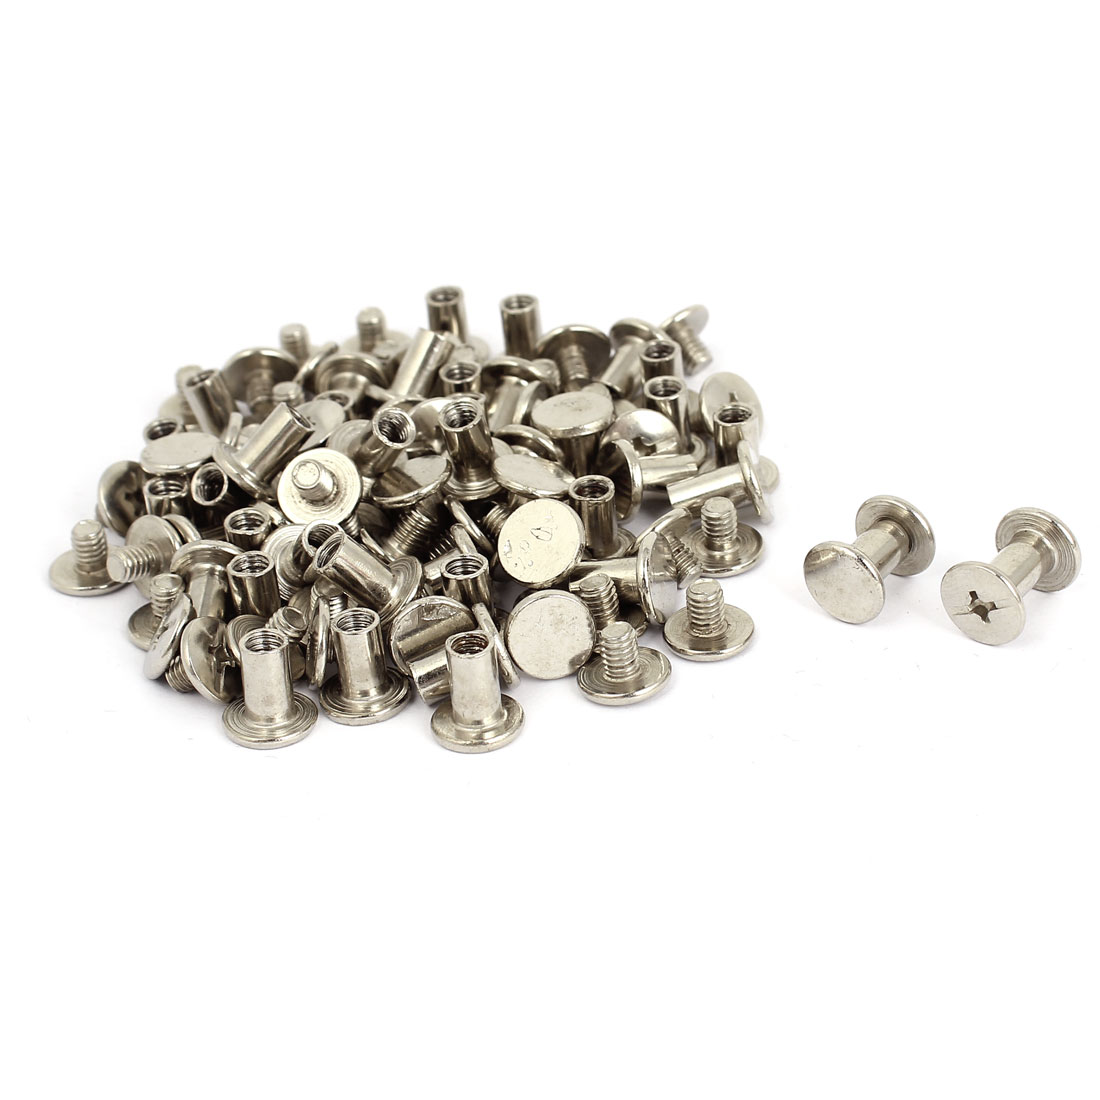 5mmx8mm Nickel Plated Binding Chicago Screw Post for Photo Albums 100pcs